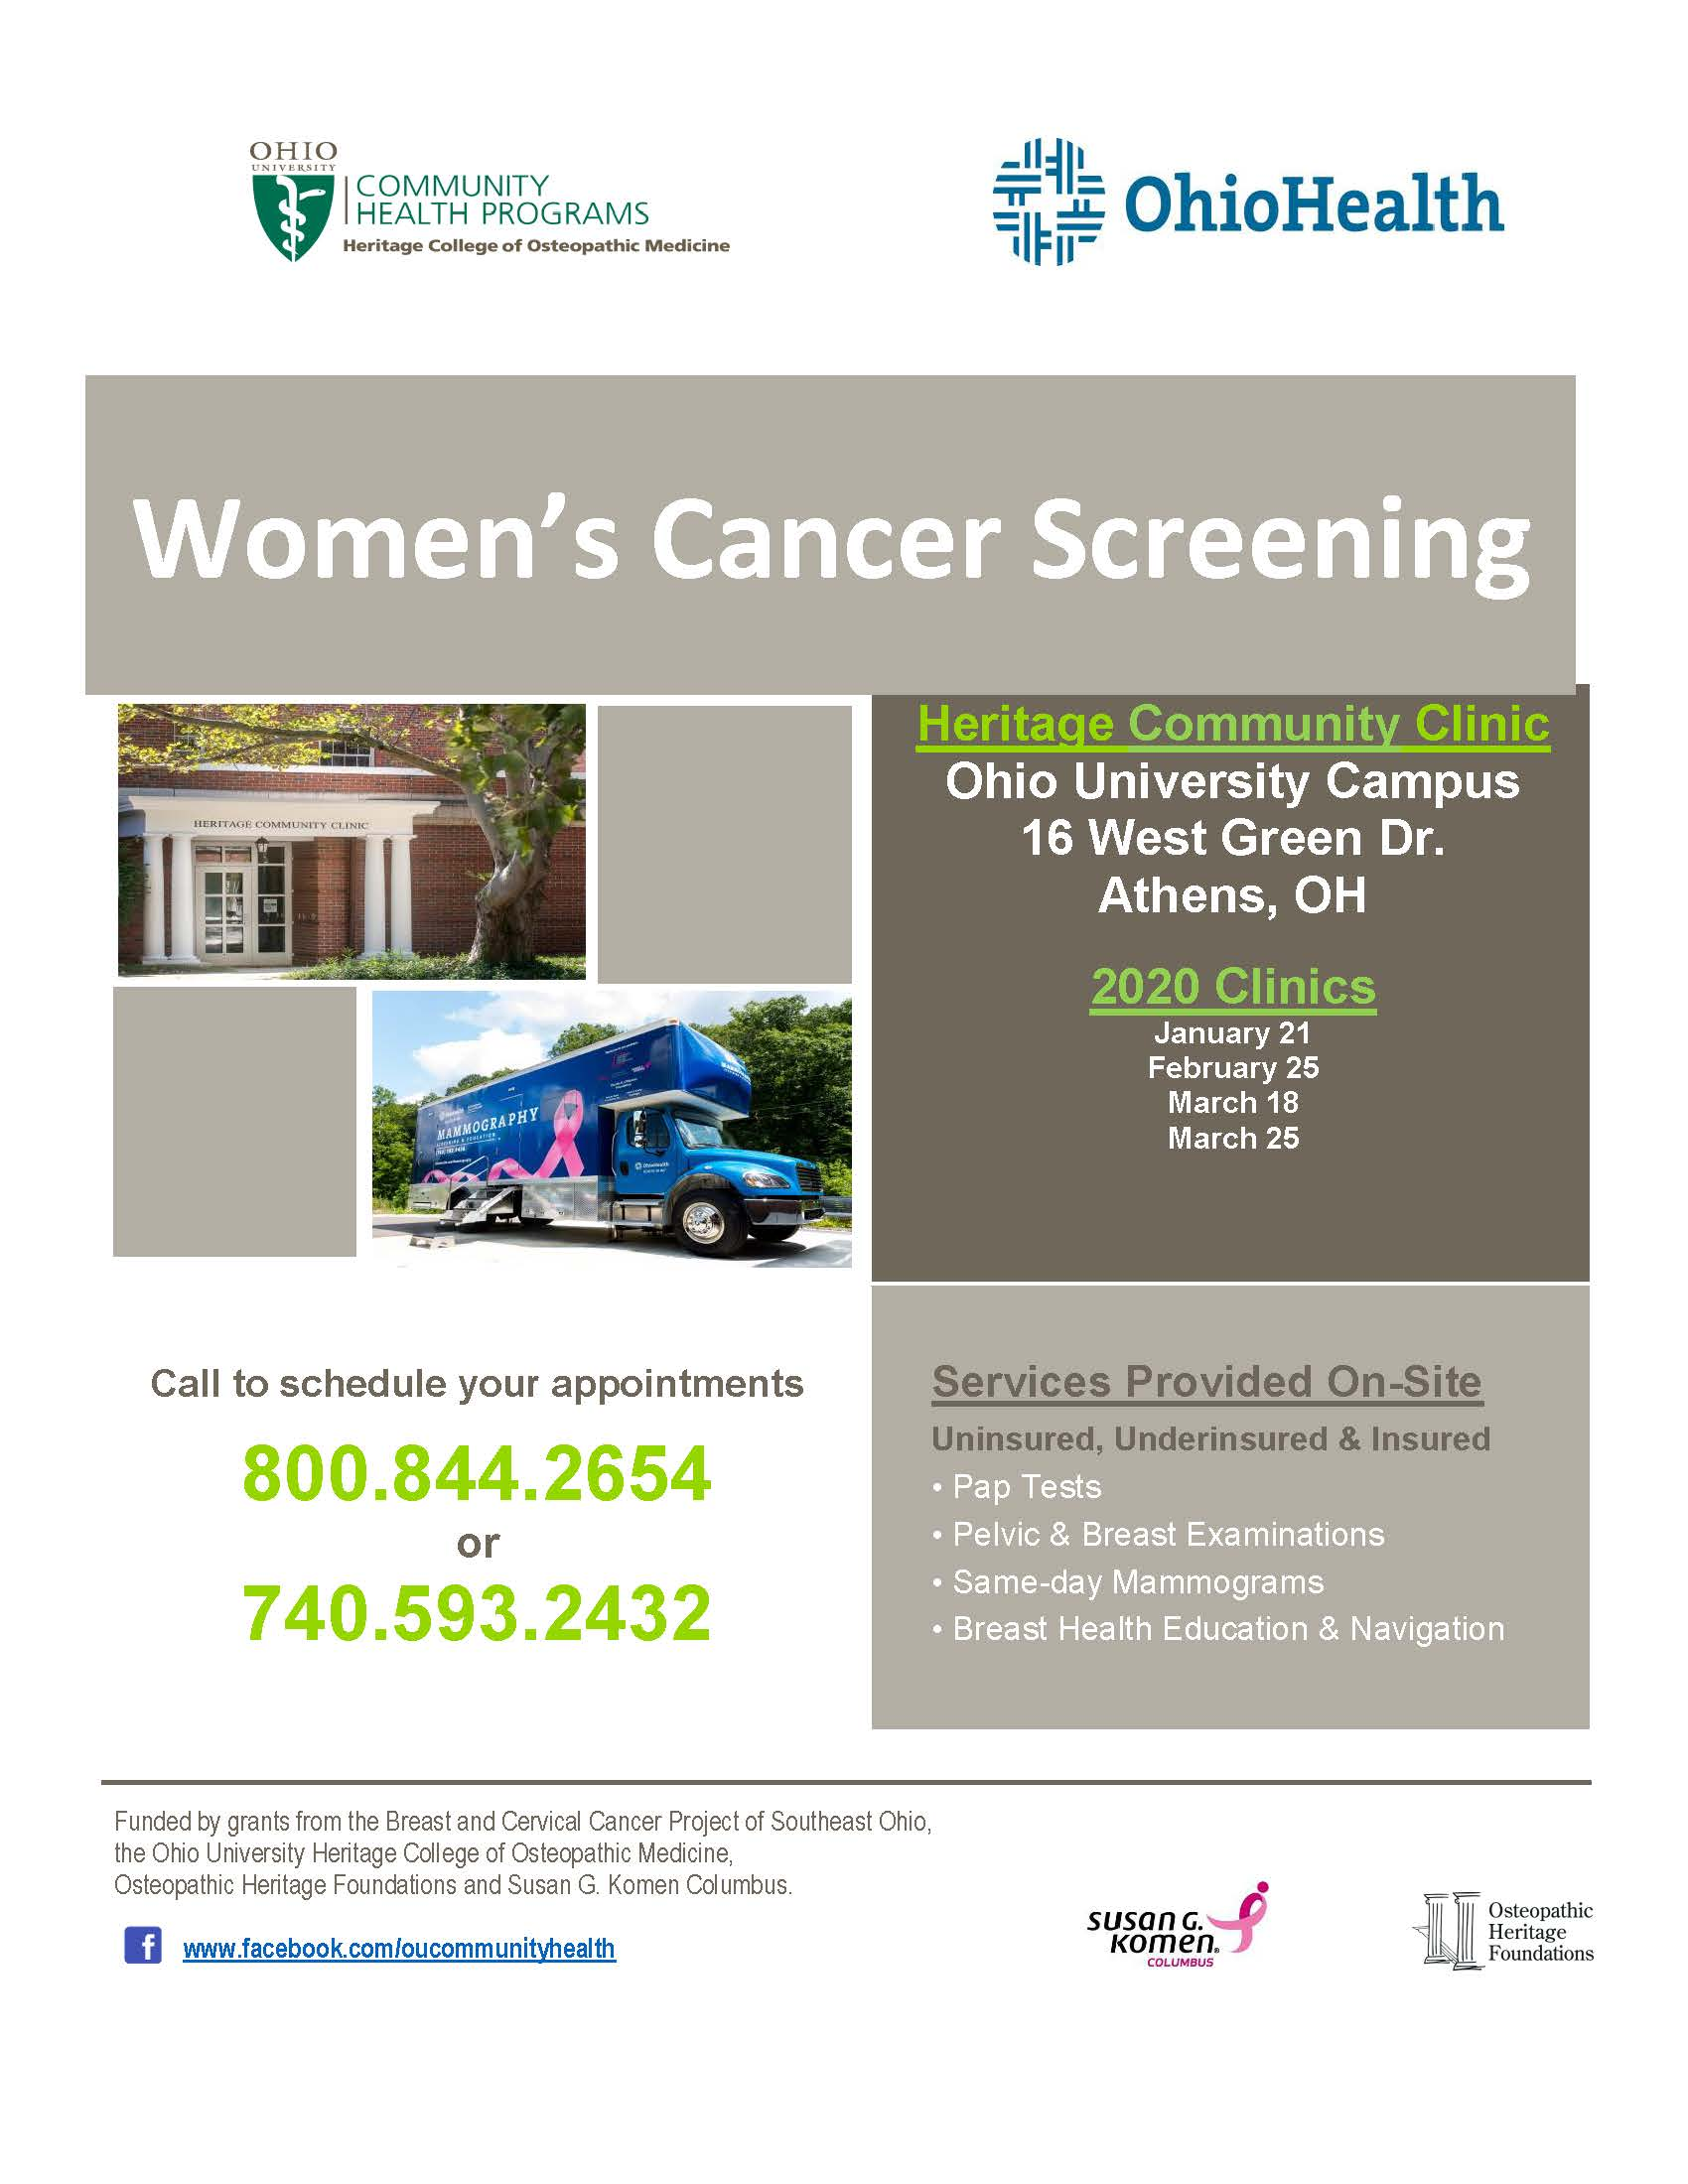 Women's Cancer Screening flier